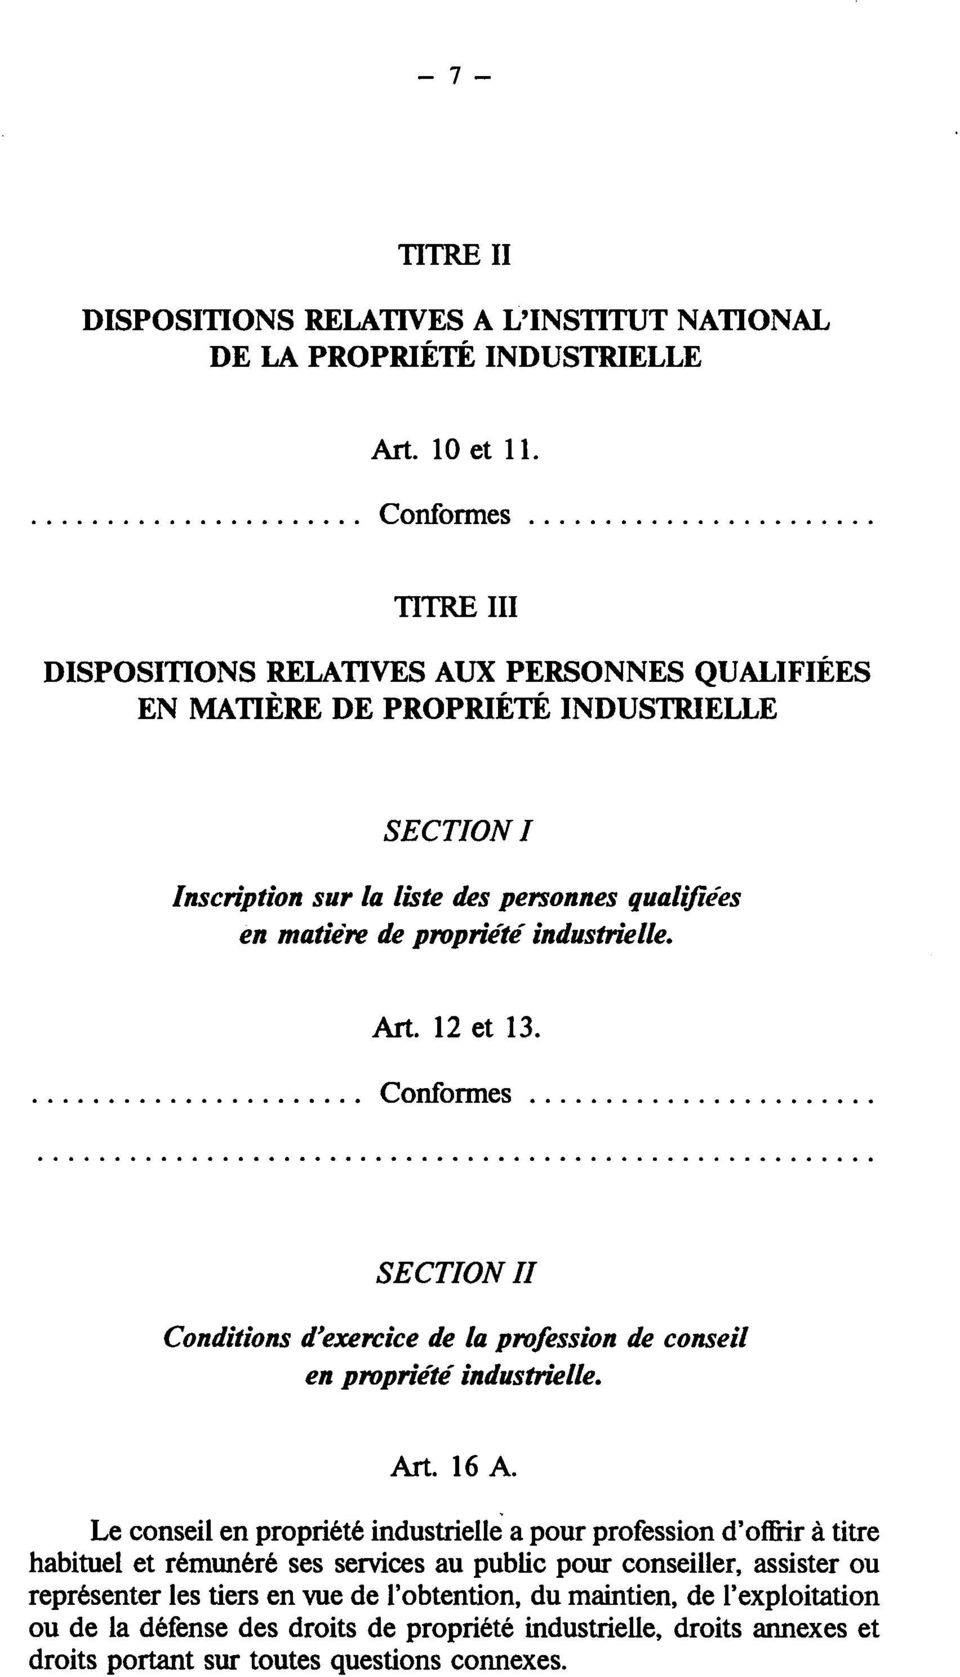 industrielle. Art. 12 et 13. Conformes SECTION II Conditions d'exercice de la profession de conseil en propriété industrielle. Art. 16 A.